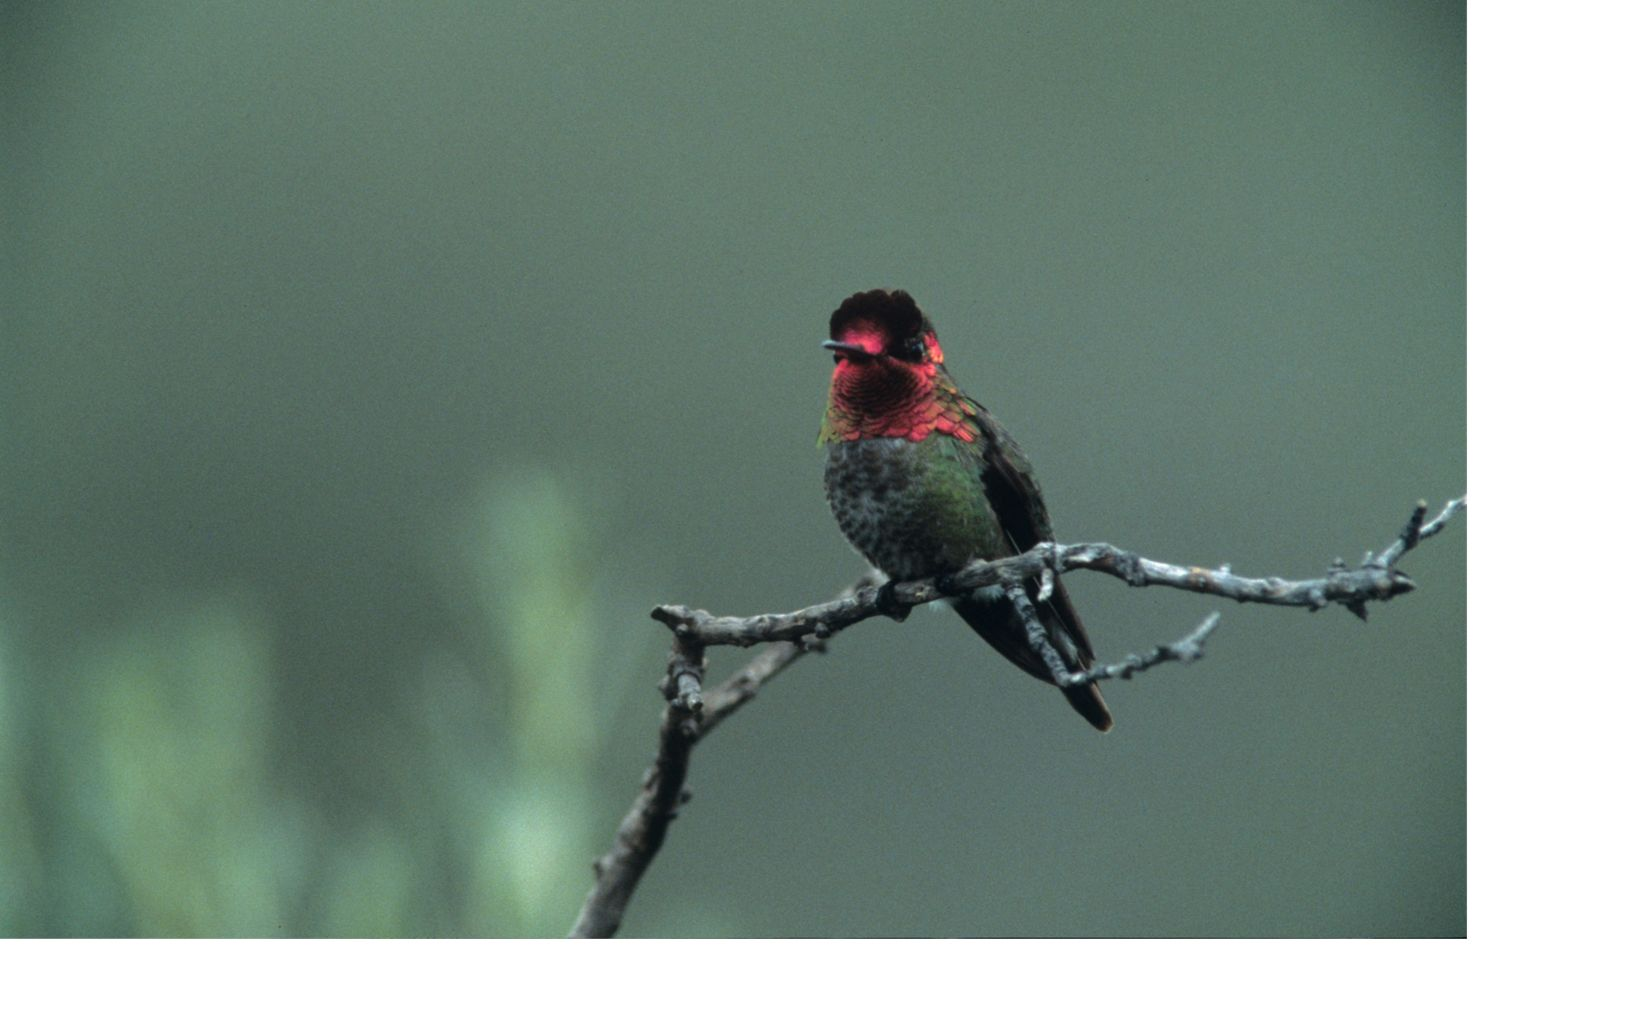 A male hummingbird perched on a branch in Proctor Valley, San Diego County, California